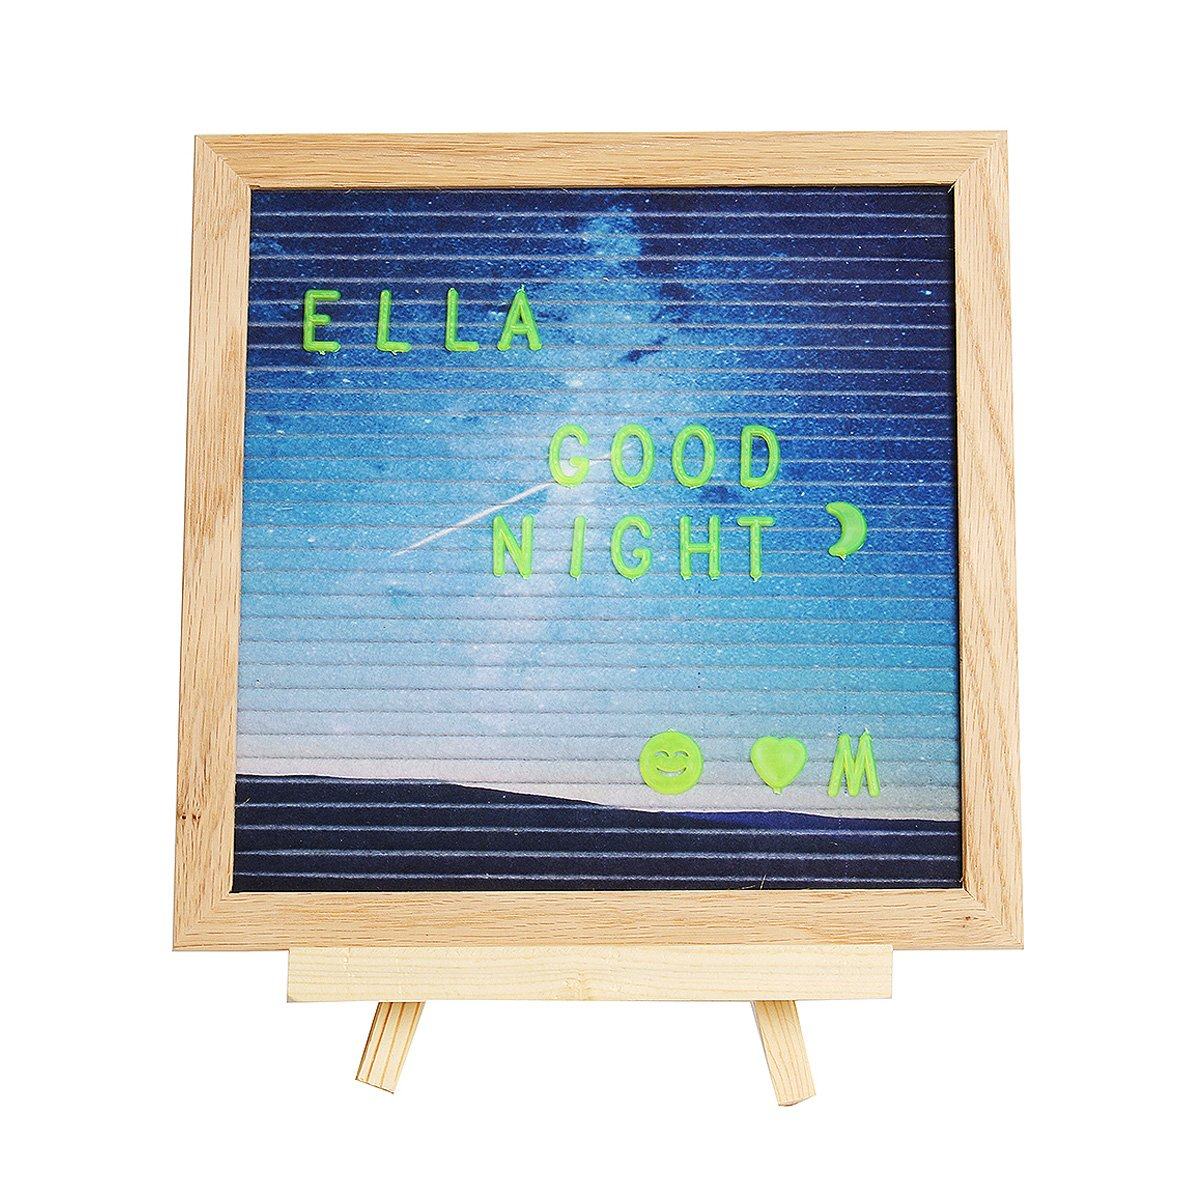 Cusfull 10''x10'' Starry Patterned Felt Letter Board + 340 Luminous Letters + Stand + Scissor + Canvas Bag, Word Board, Marquee Sign, Oak Wood Frame, 1010w Message Board